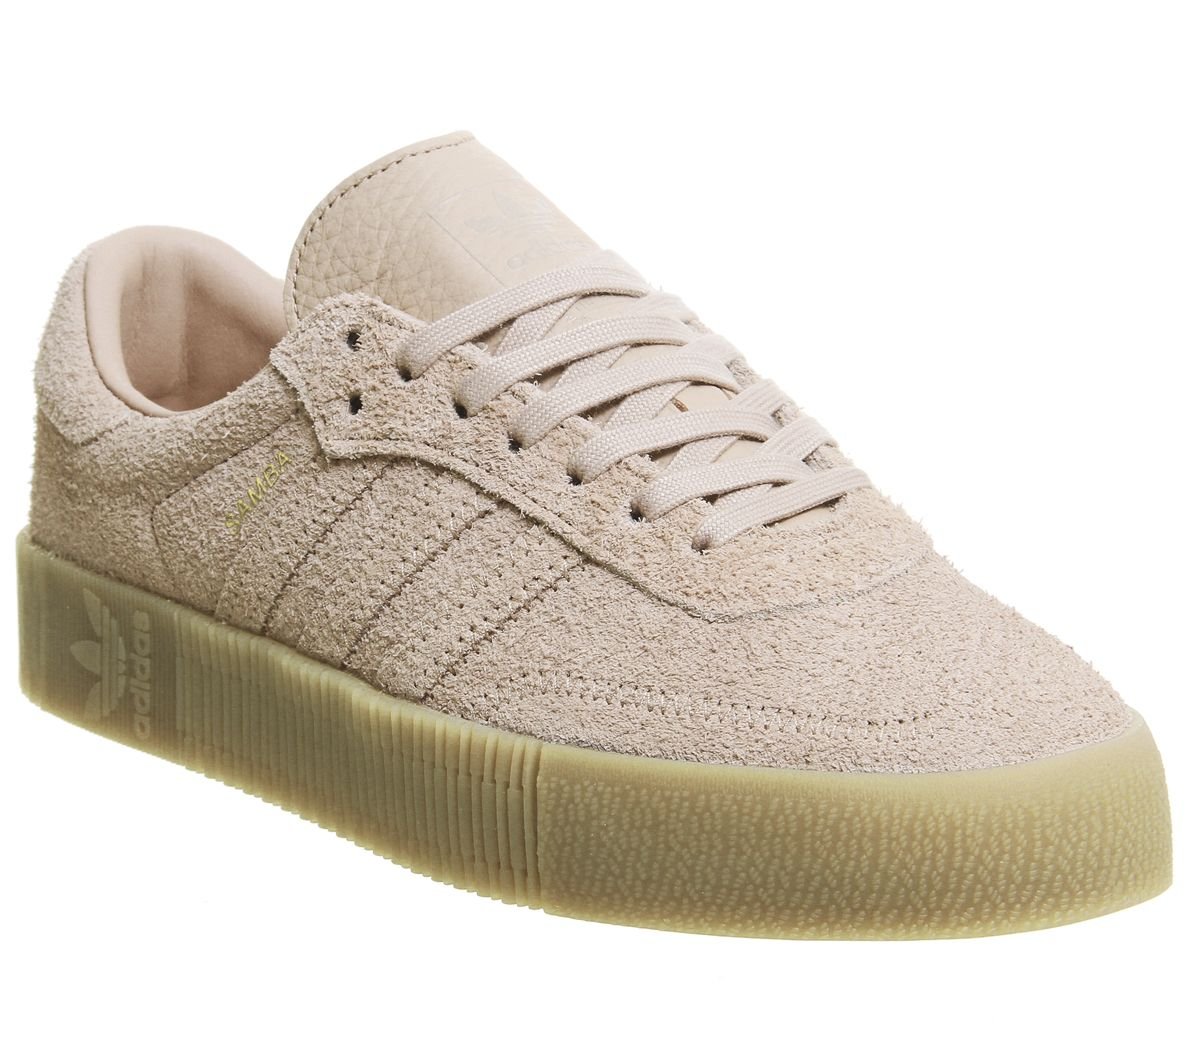 009c47ced1643 adidas Samba Rose Trainers Ash Pearl Gum - Hers trainers